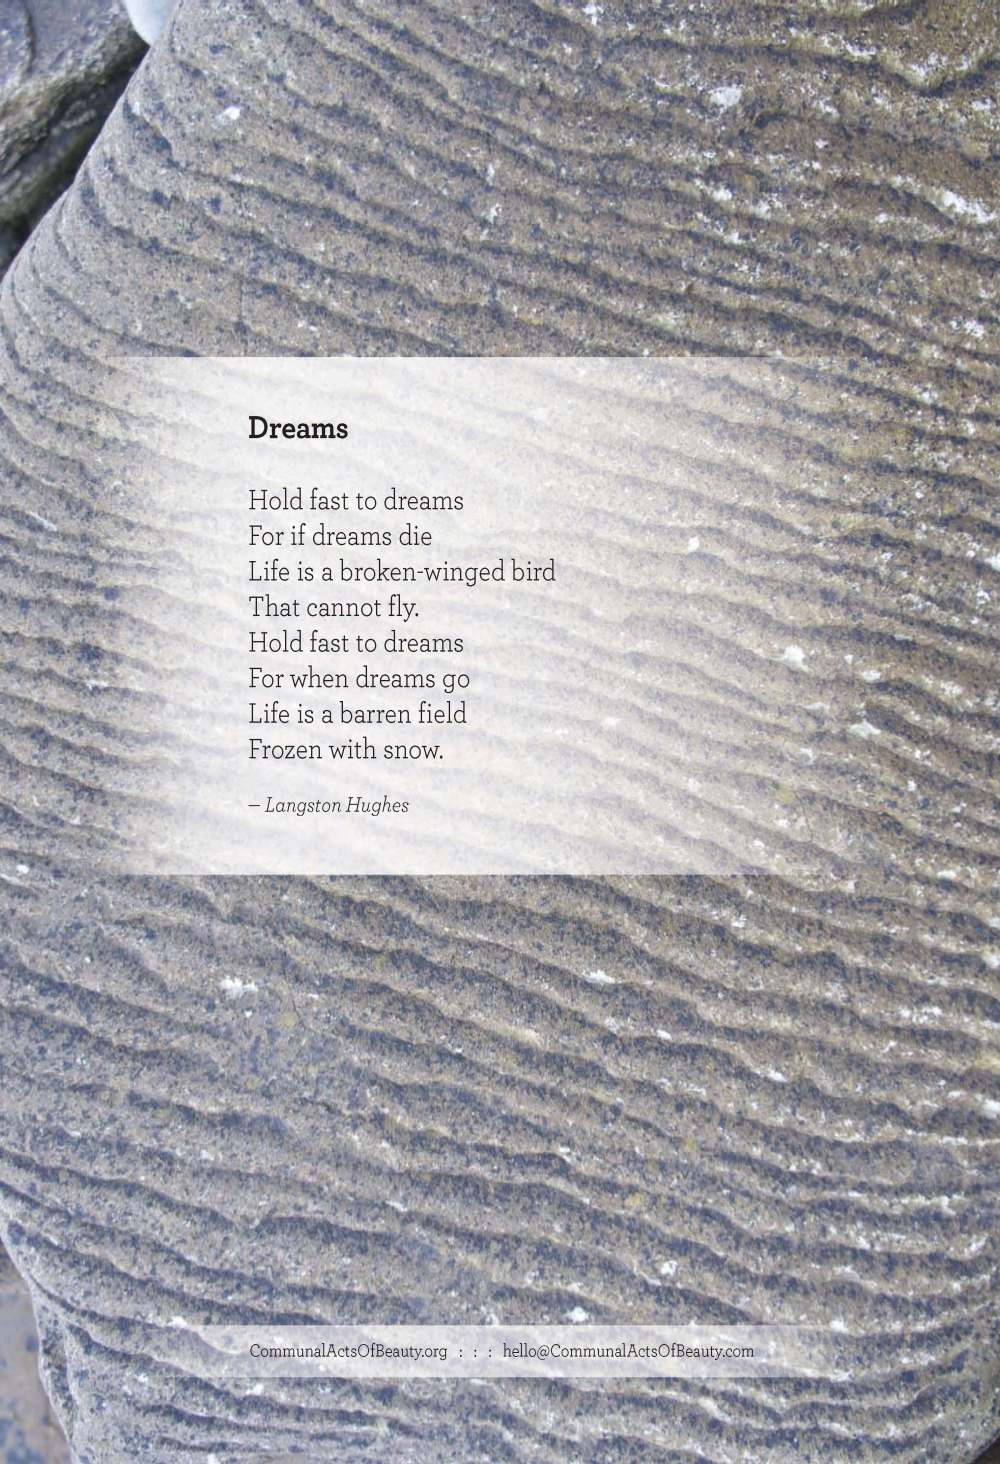 Dreams_LangstonHughes_small